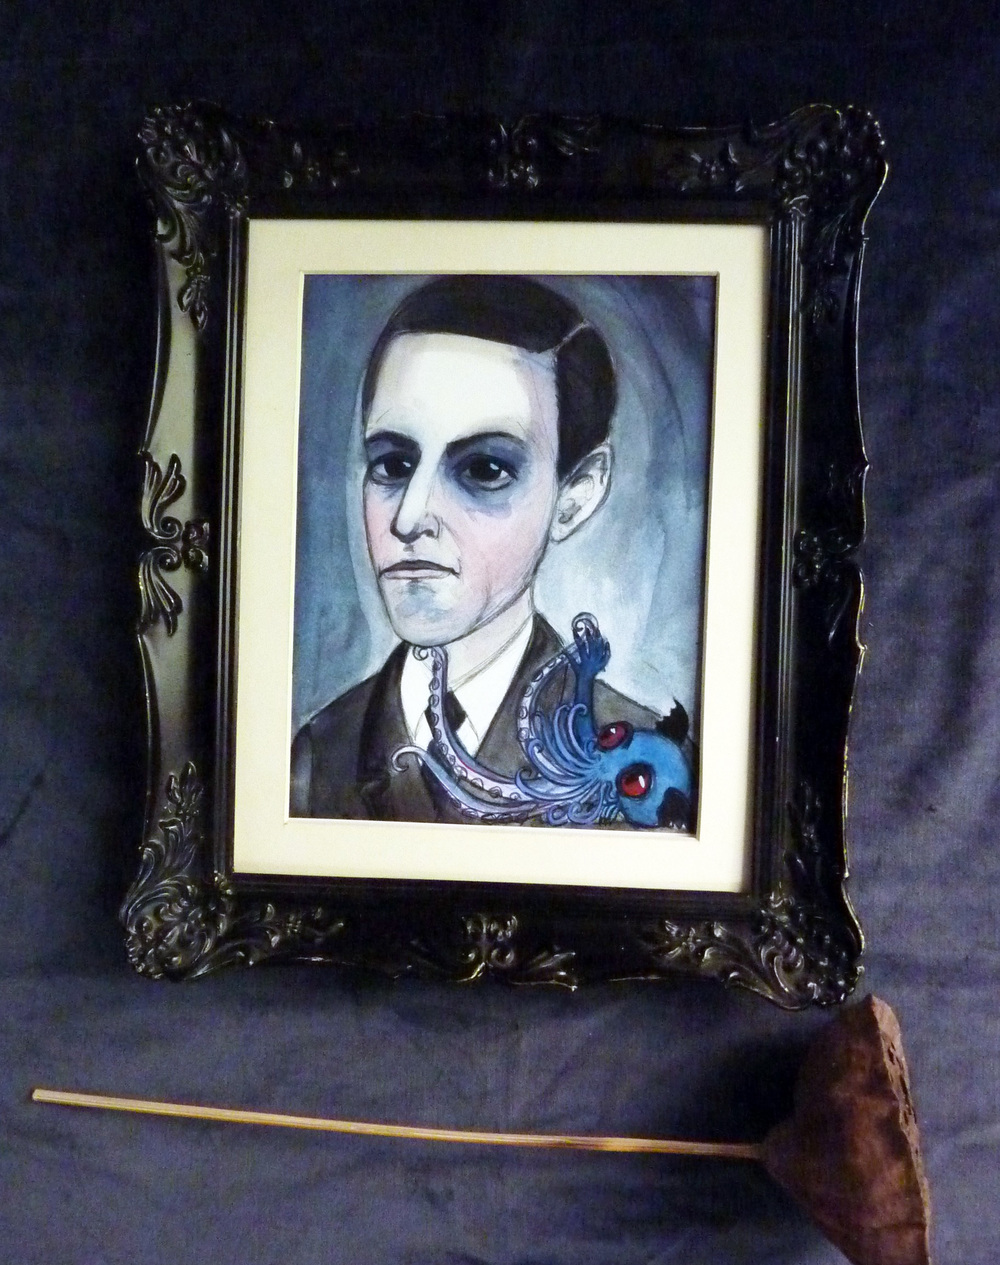 h.p. lovecraft art Print Framed